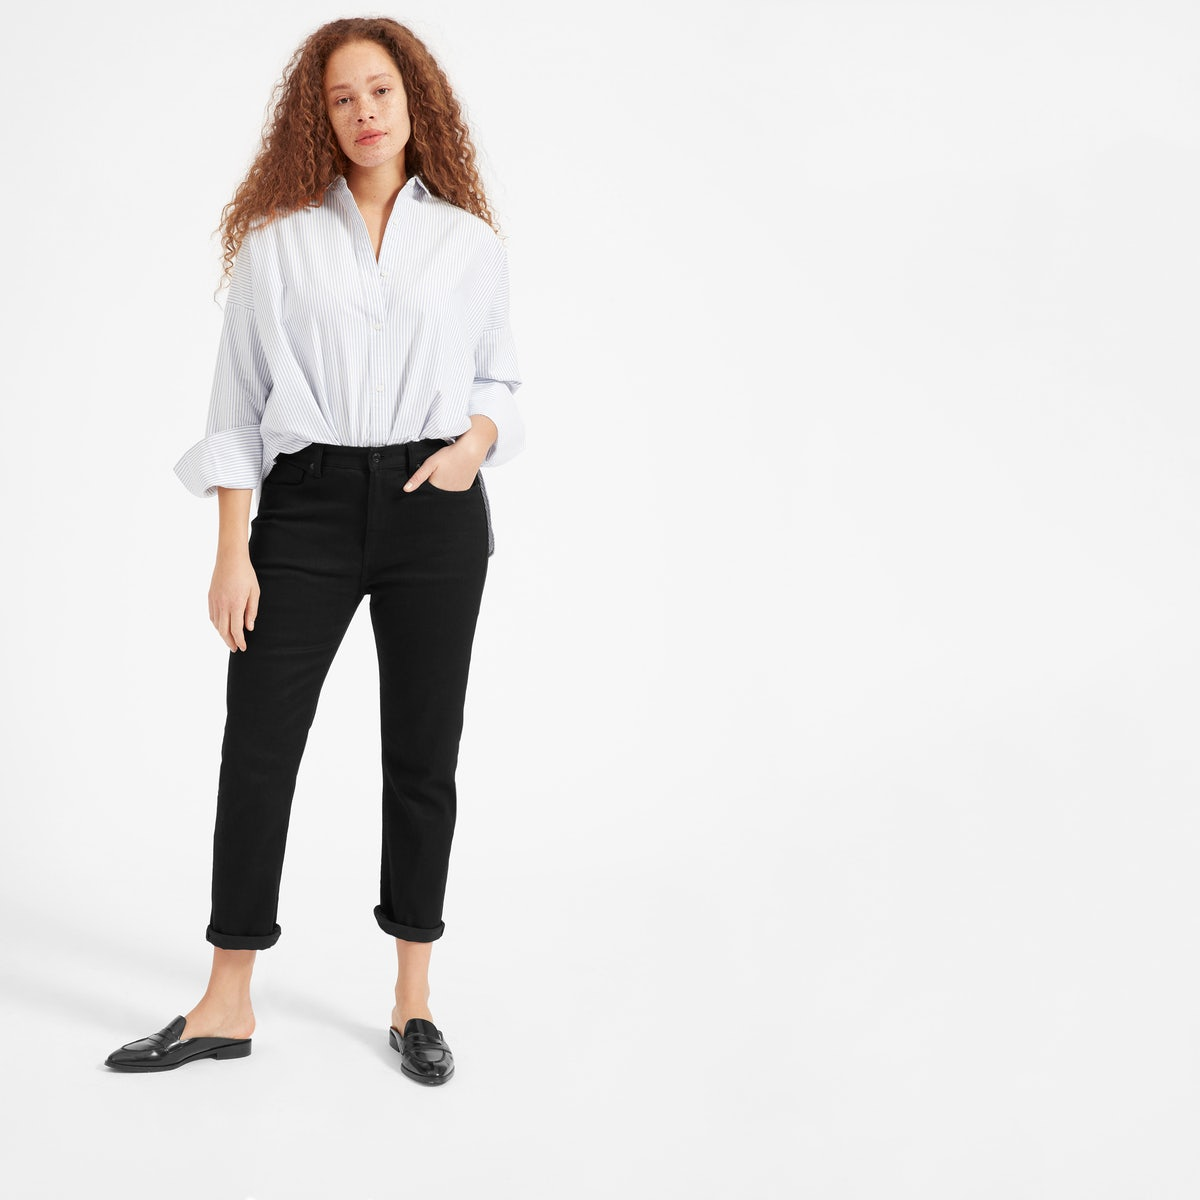 26 Days of Outfit Ideas: How to Style Black Jeans - Nada Manley